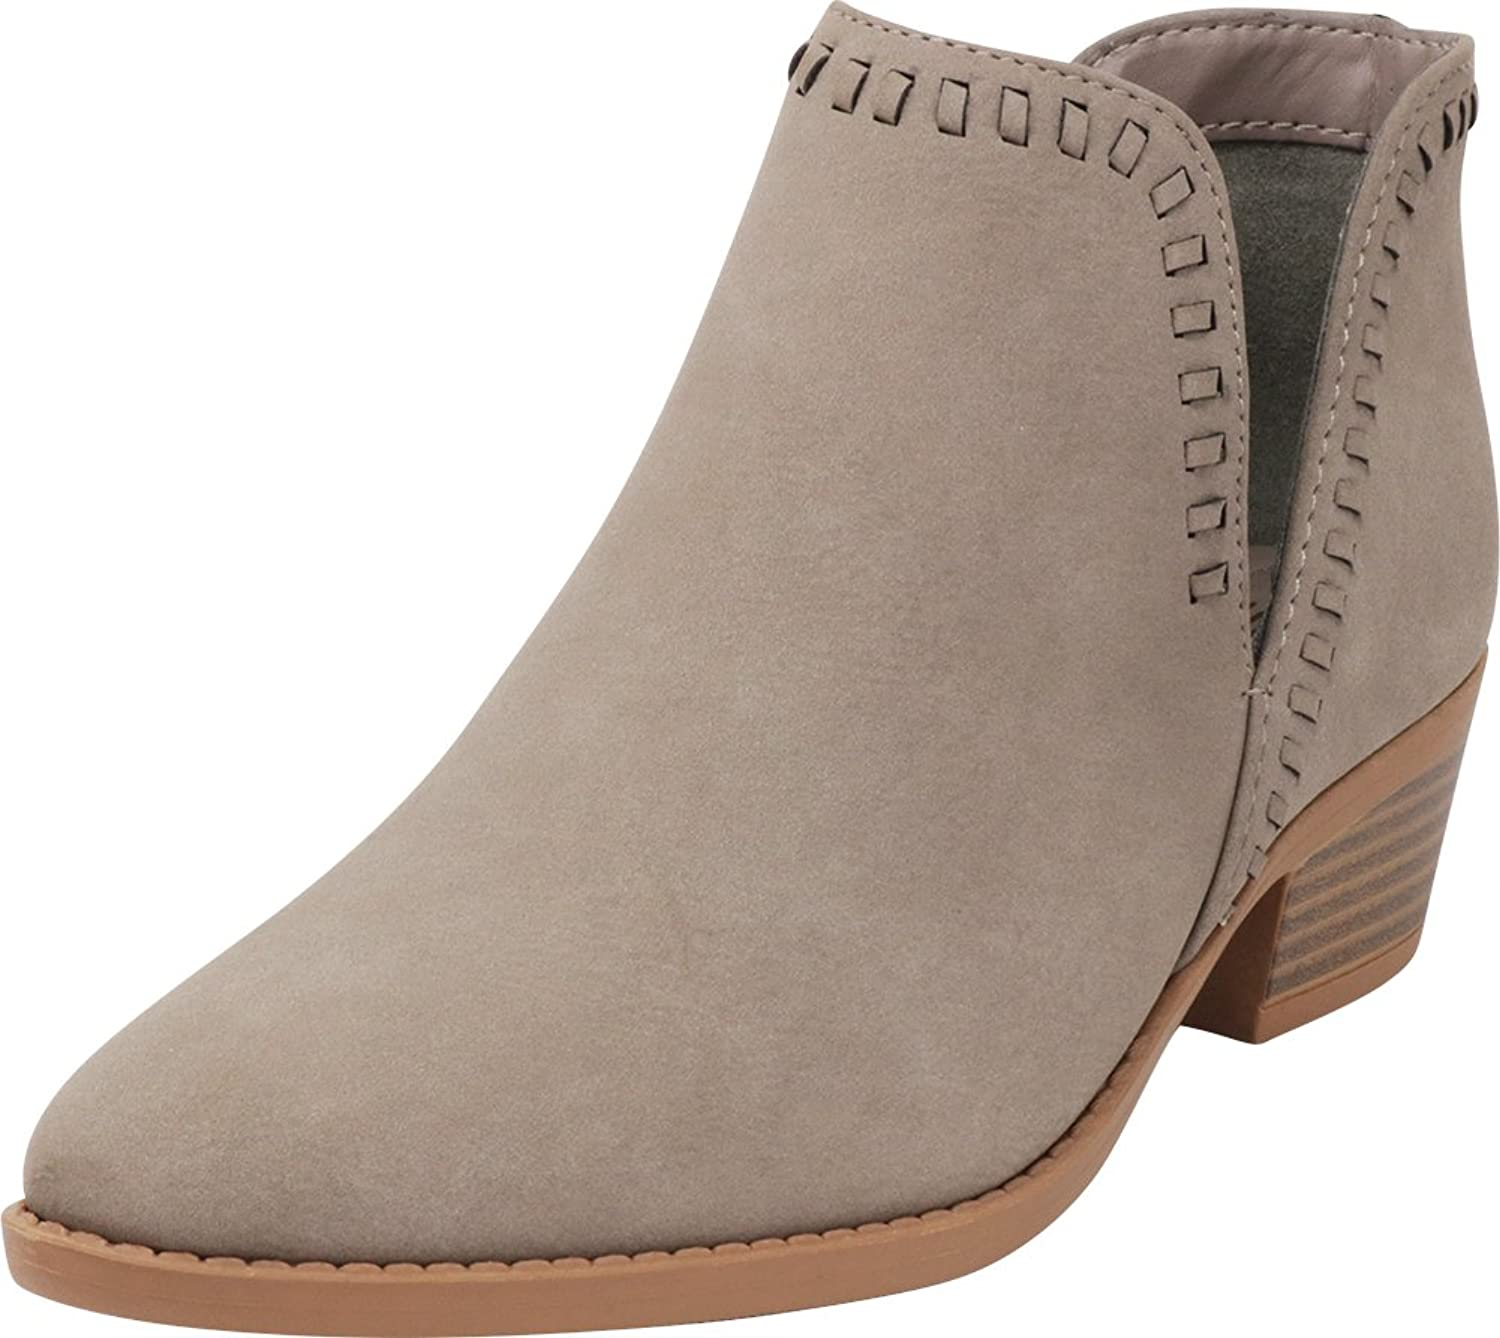 Cambridge Select Women's Closed Toe Western Side Cutout Whipstitch Chunky Stacked Block Low Heel Ankle Bootie